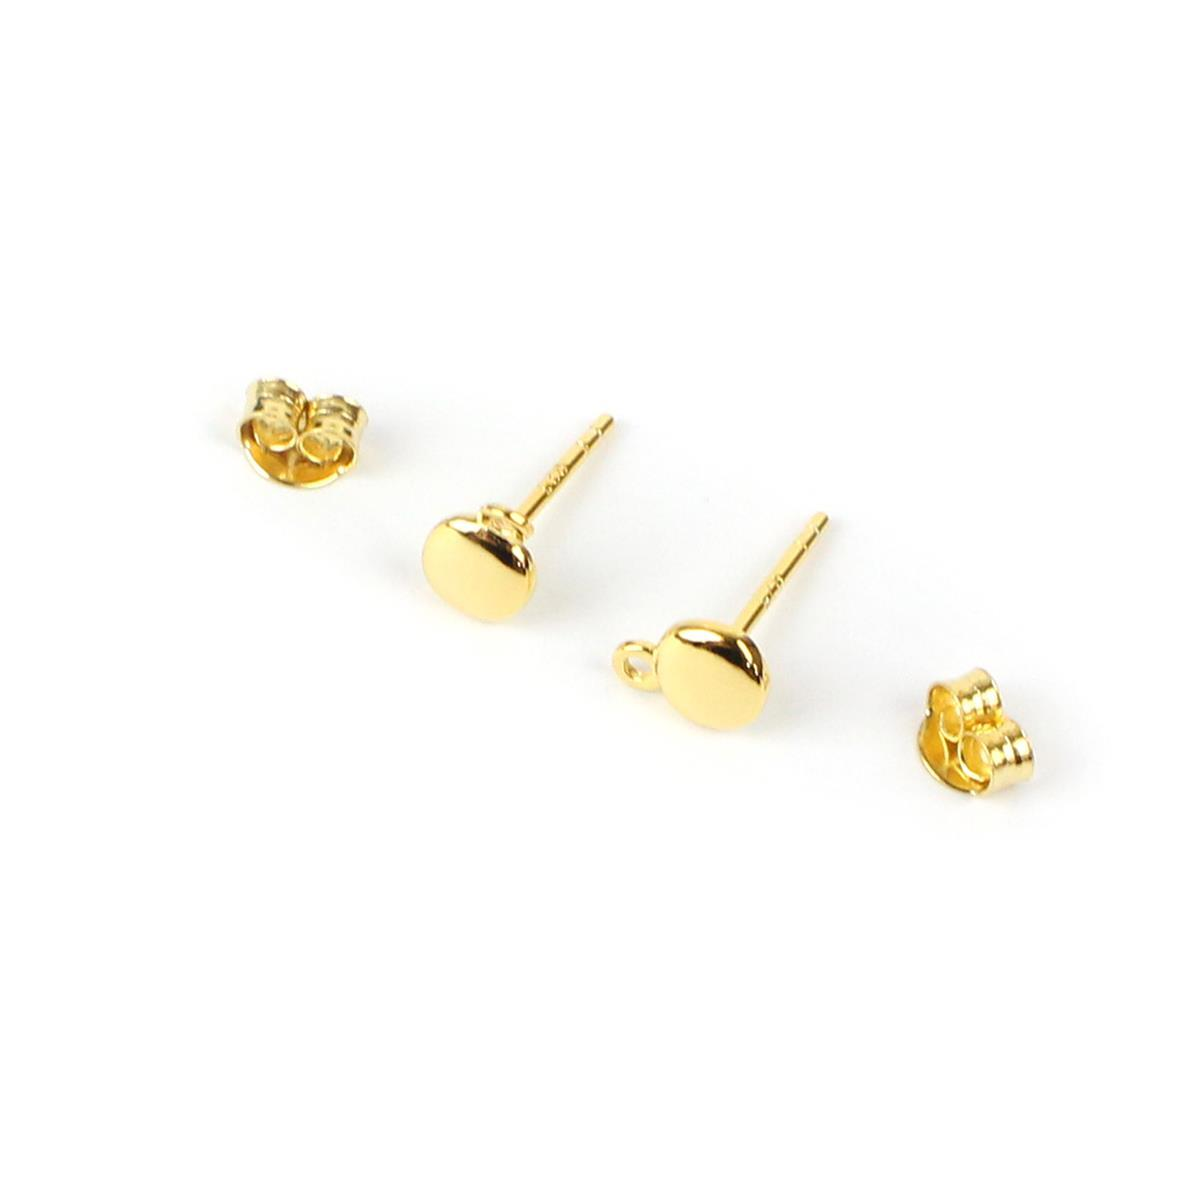 c9205ad8c Gold Plated 925 Sterling Silver Pebble Earring Finding with Butterfly Back  Aprrox 5mm, 1 Pair